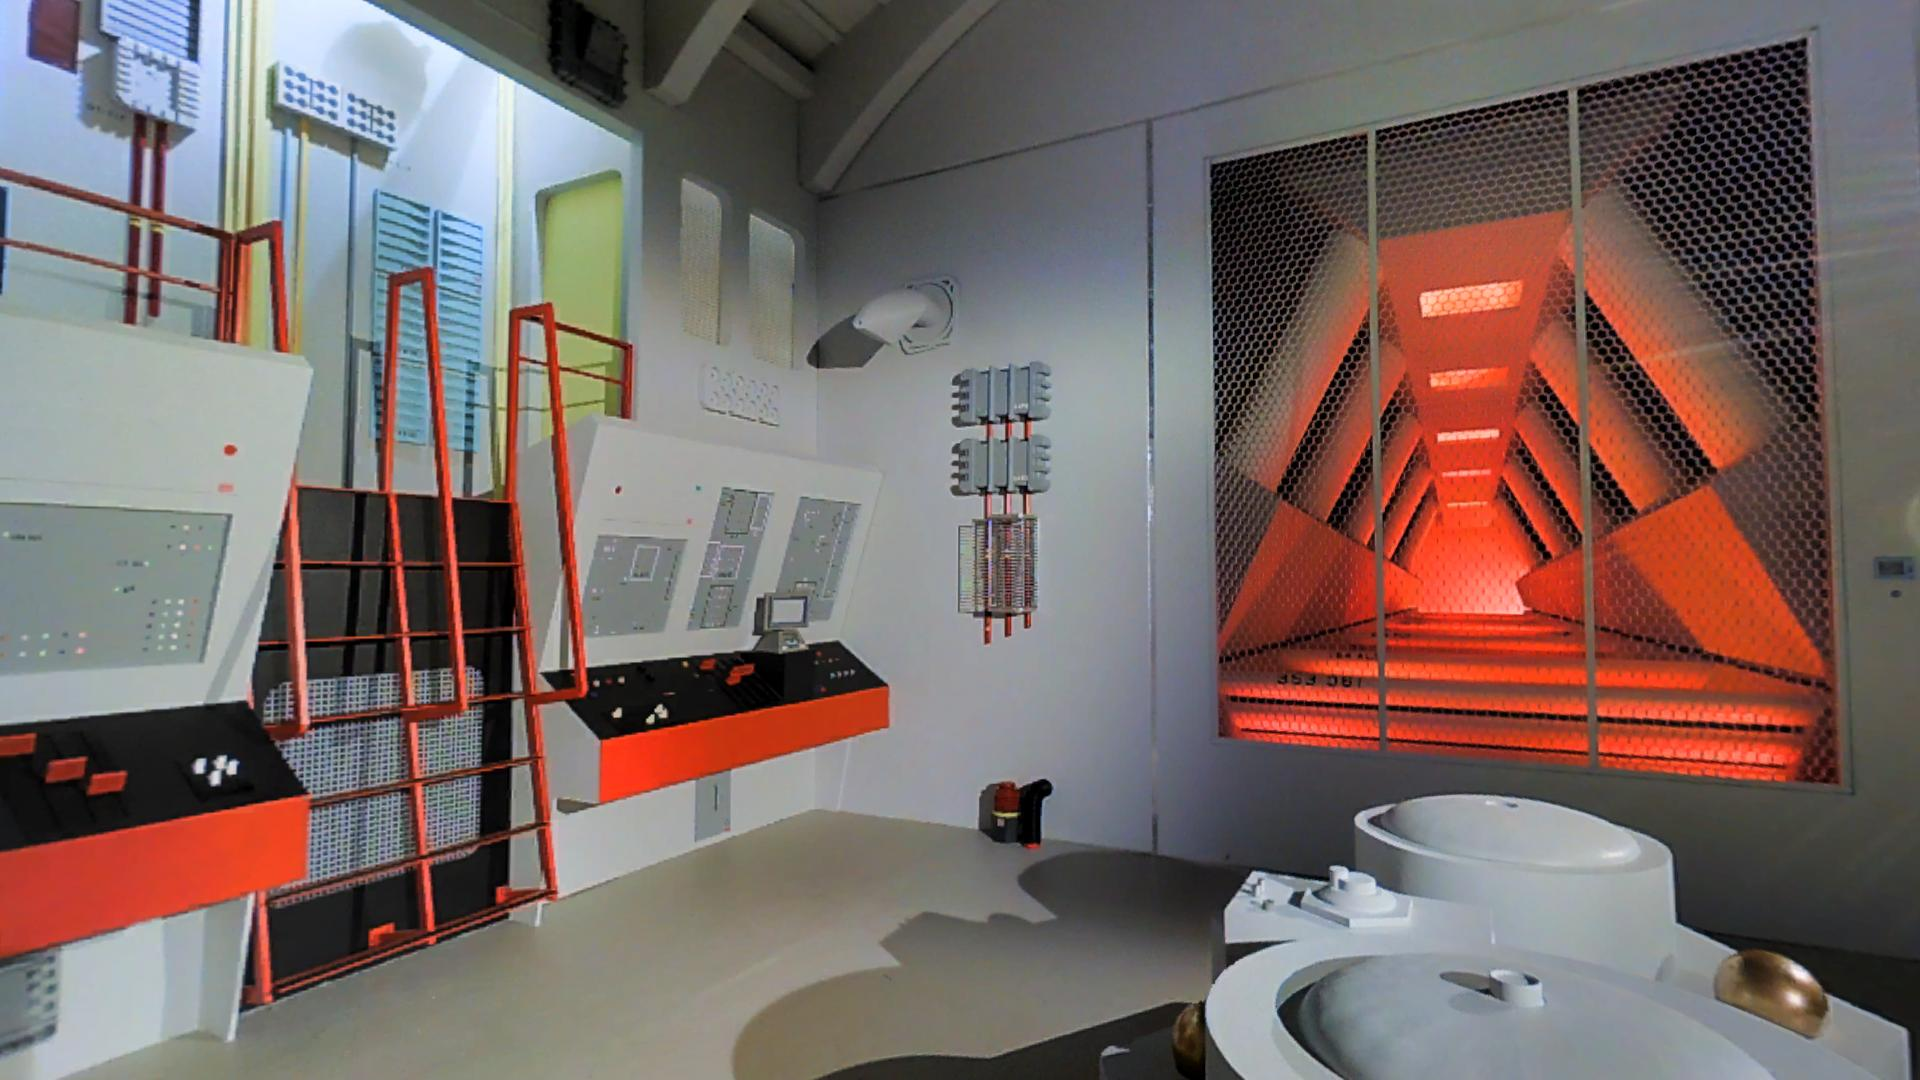 Star Trek Continues - Engineering Room